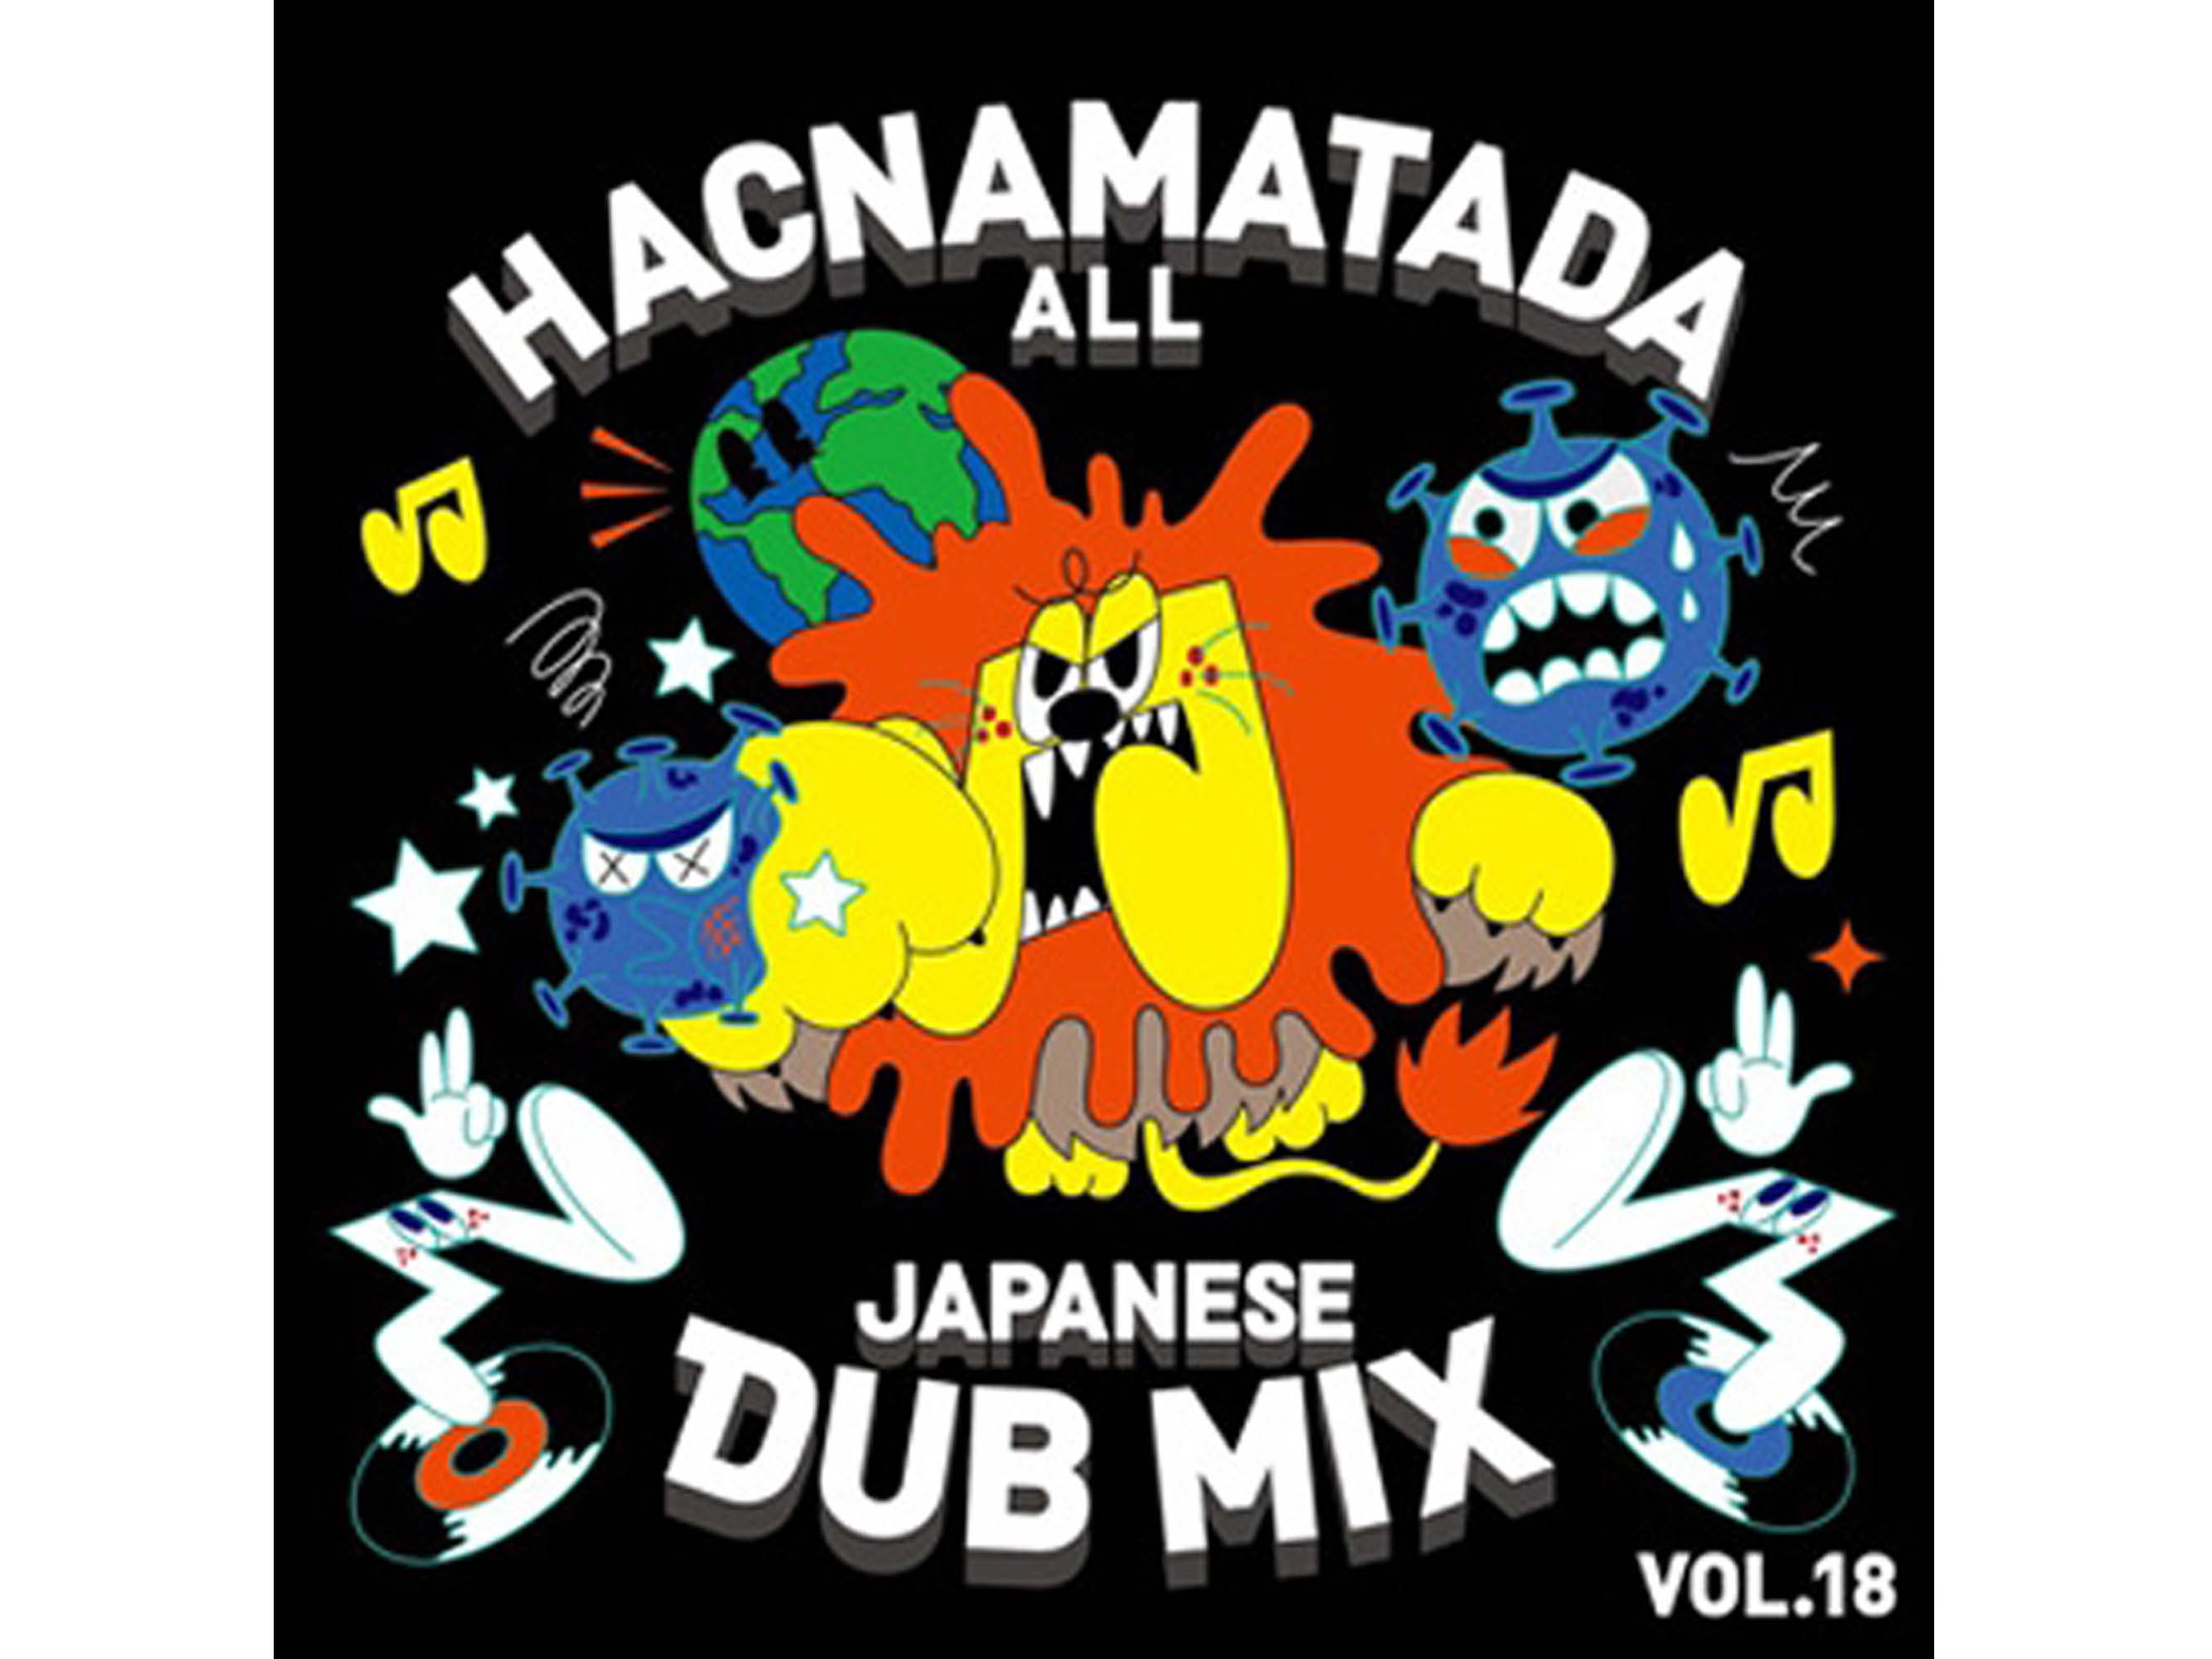 HACNAMATADA ALL JAPANESE DUB MIX vol.18 - HACNAMATADA